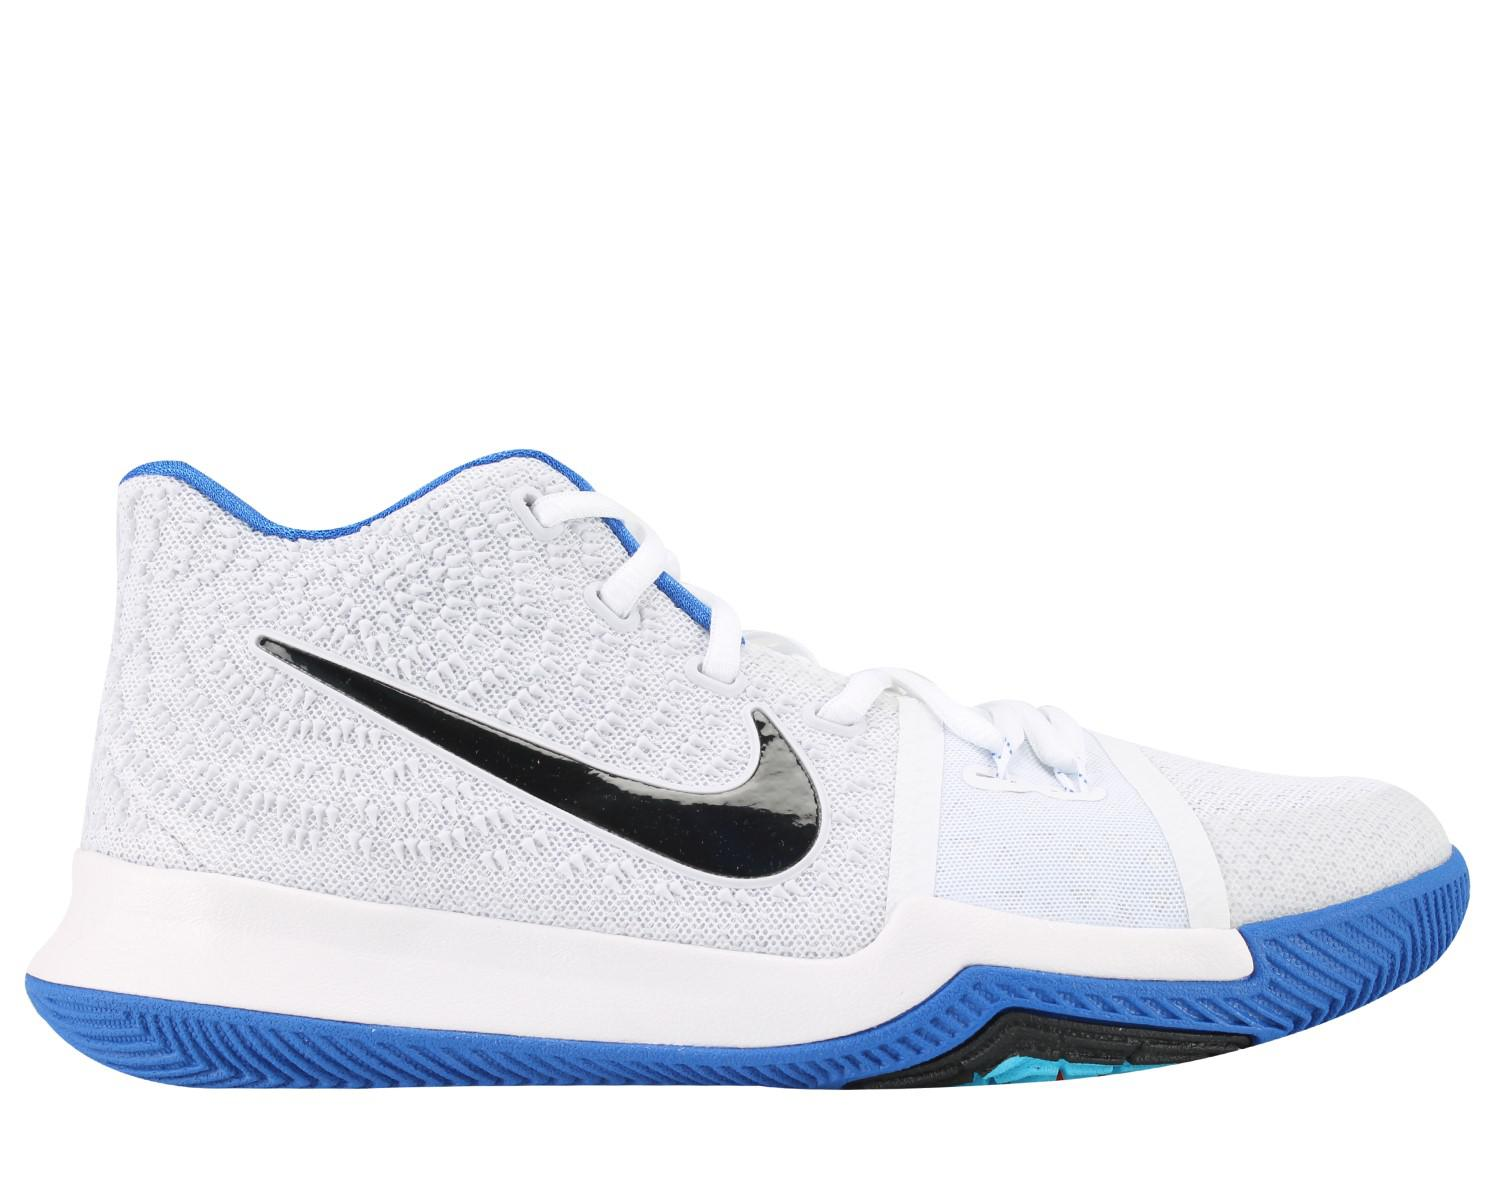 wholesale dealer 225d9 375fc Lyst - Nike Kyrie 3 (gs) Big Kids Basketball Shoes Size 6.5 in Blue ...